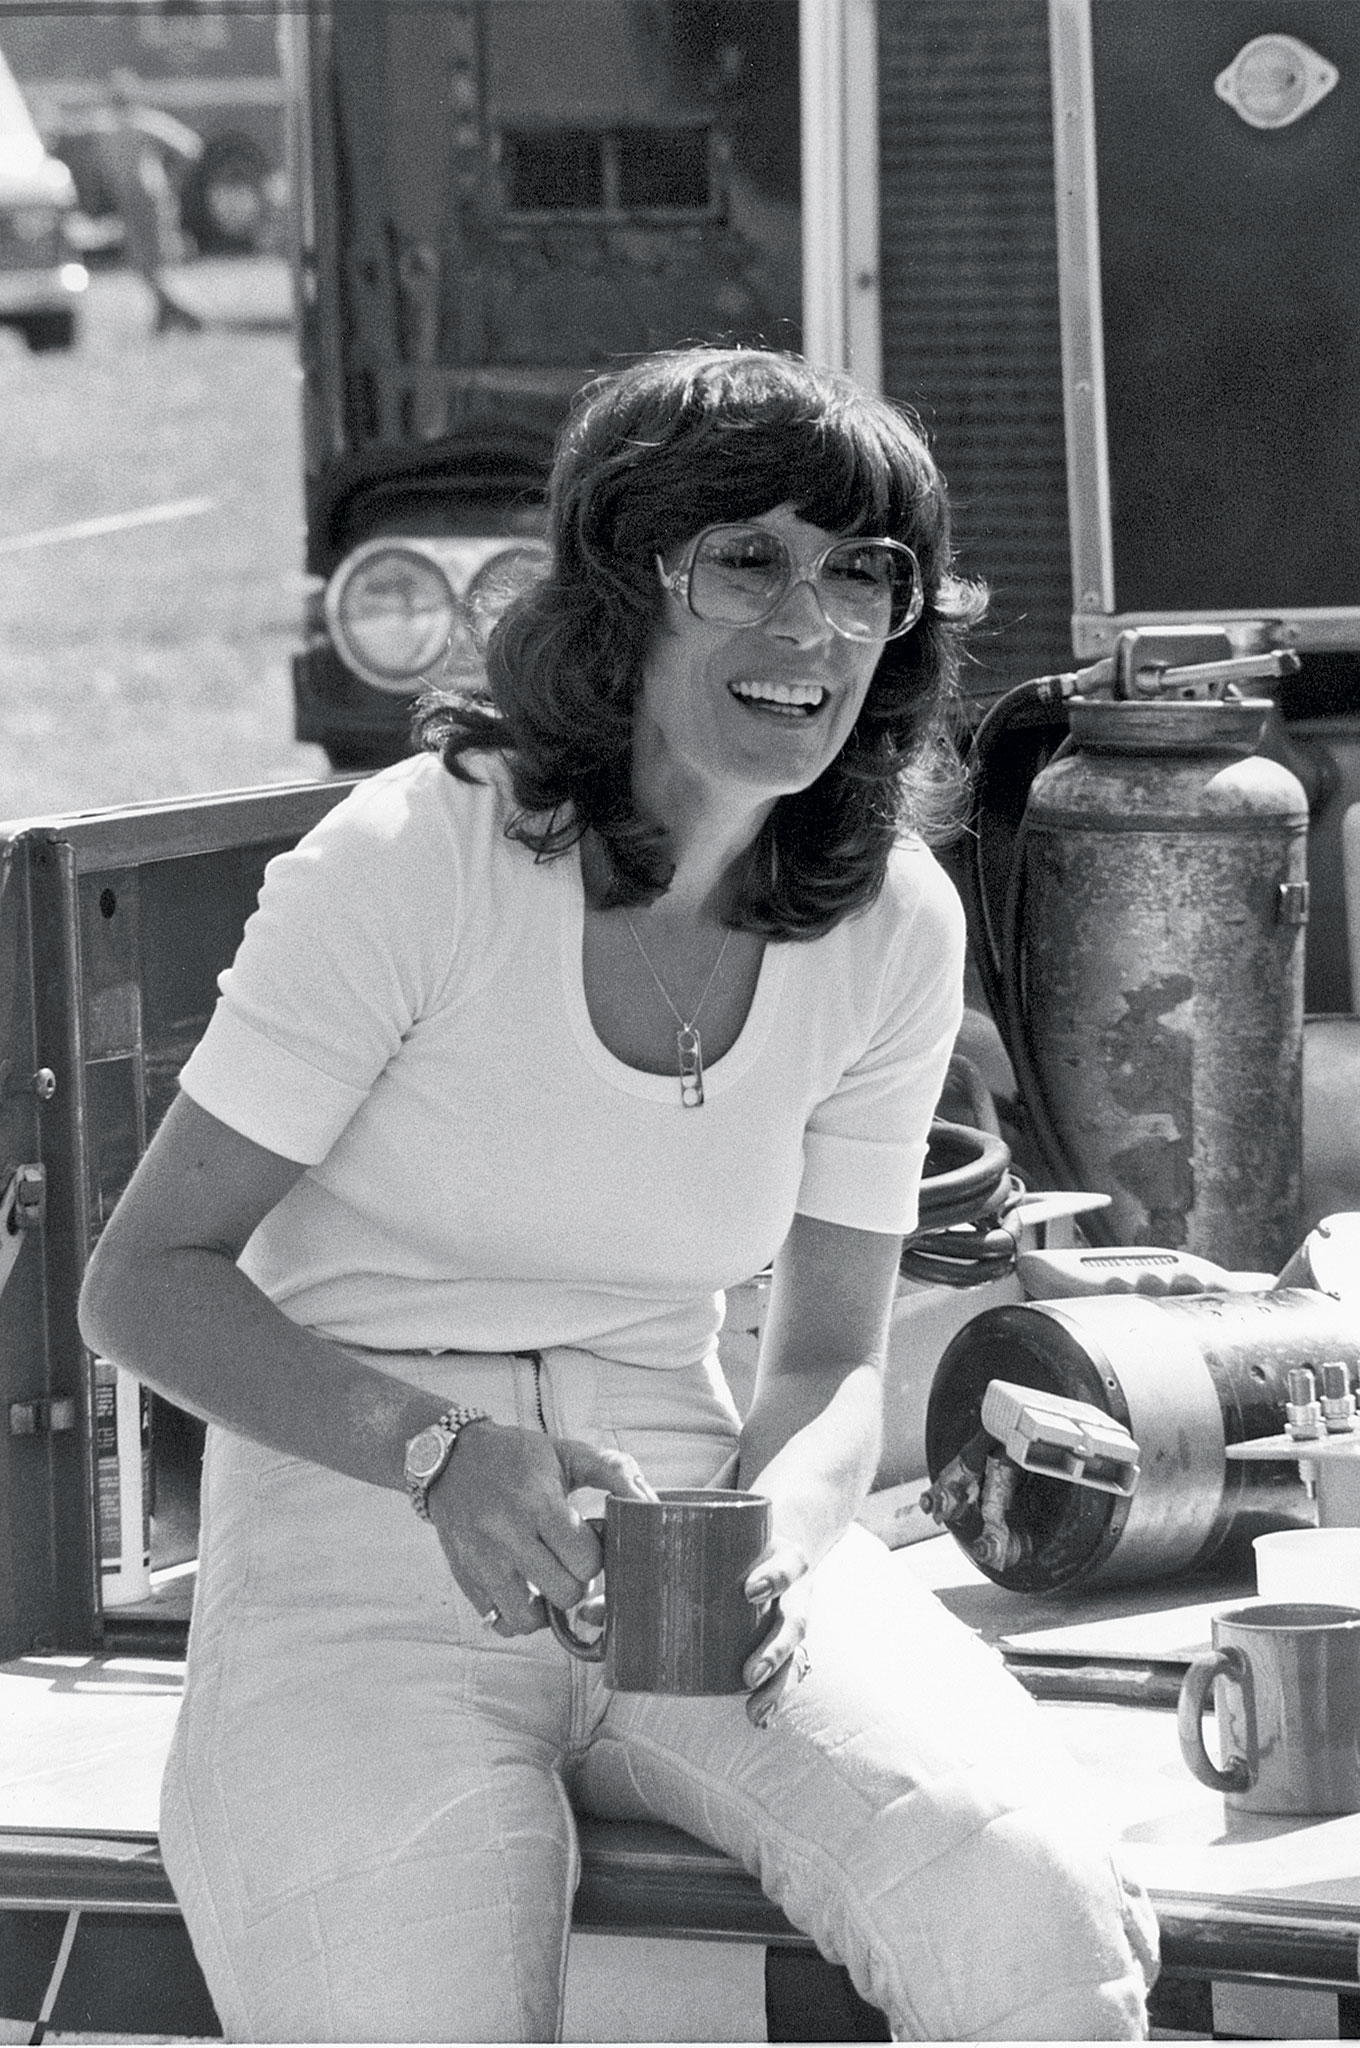 Shirley Muldowney's career in Top Fuel is legendary, and the Car Craft readers acknowledged her talents with Top Fuel Driver in both 1981 and 1982 along with Person of the Year in 1977. These were followed by the prestigious Ollie Award in 1985. Linda Vaughn is the only other female Ollie Award recipient.